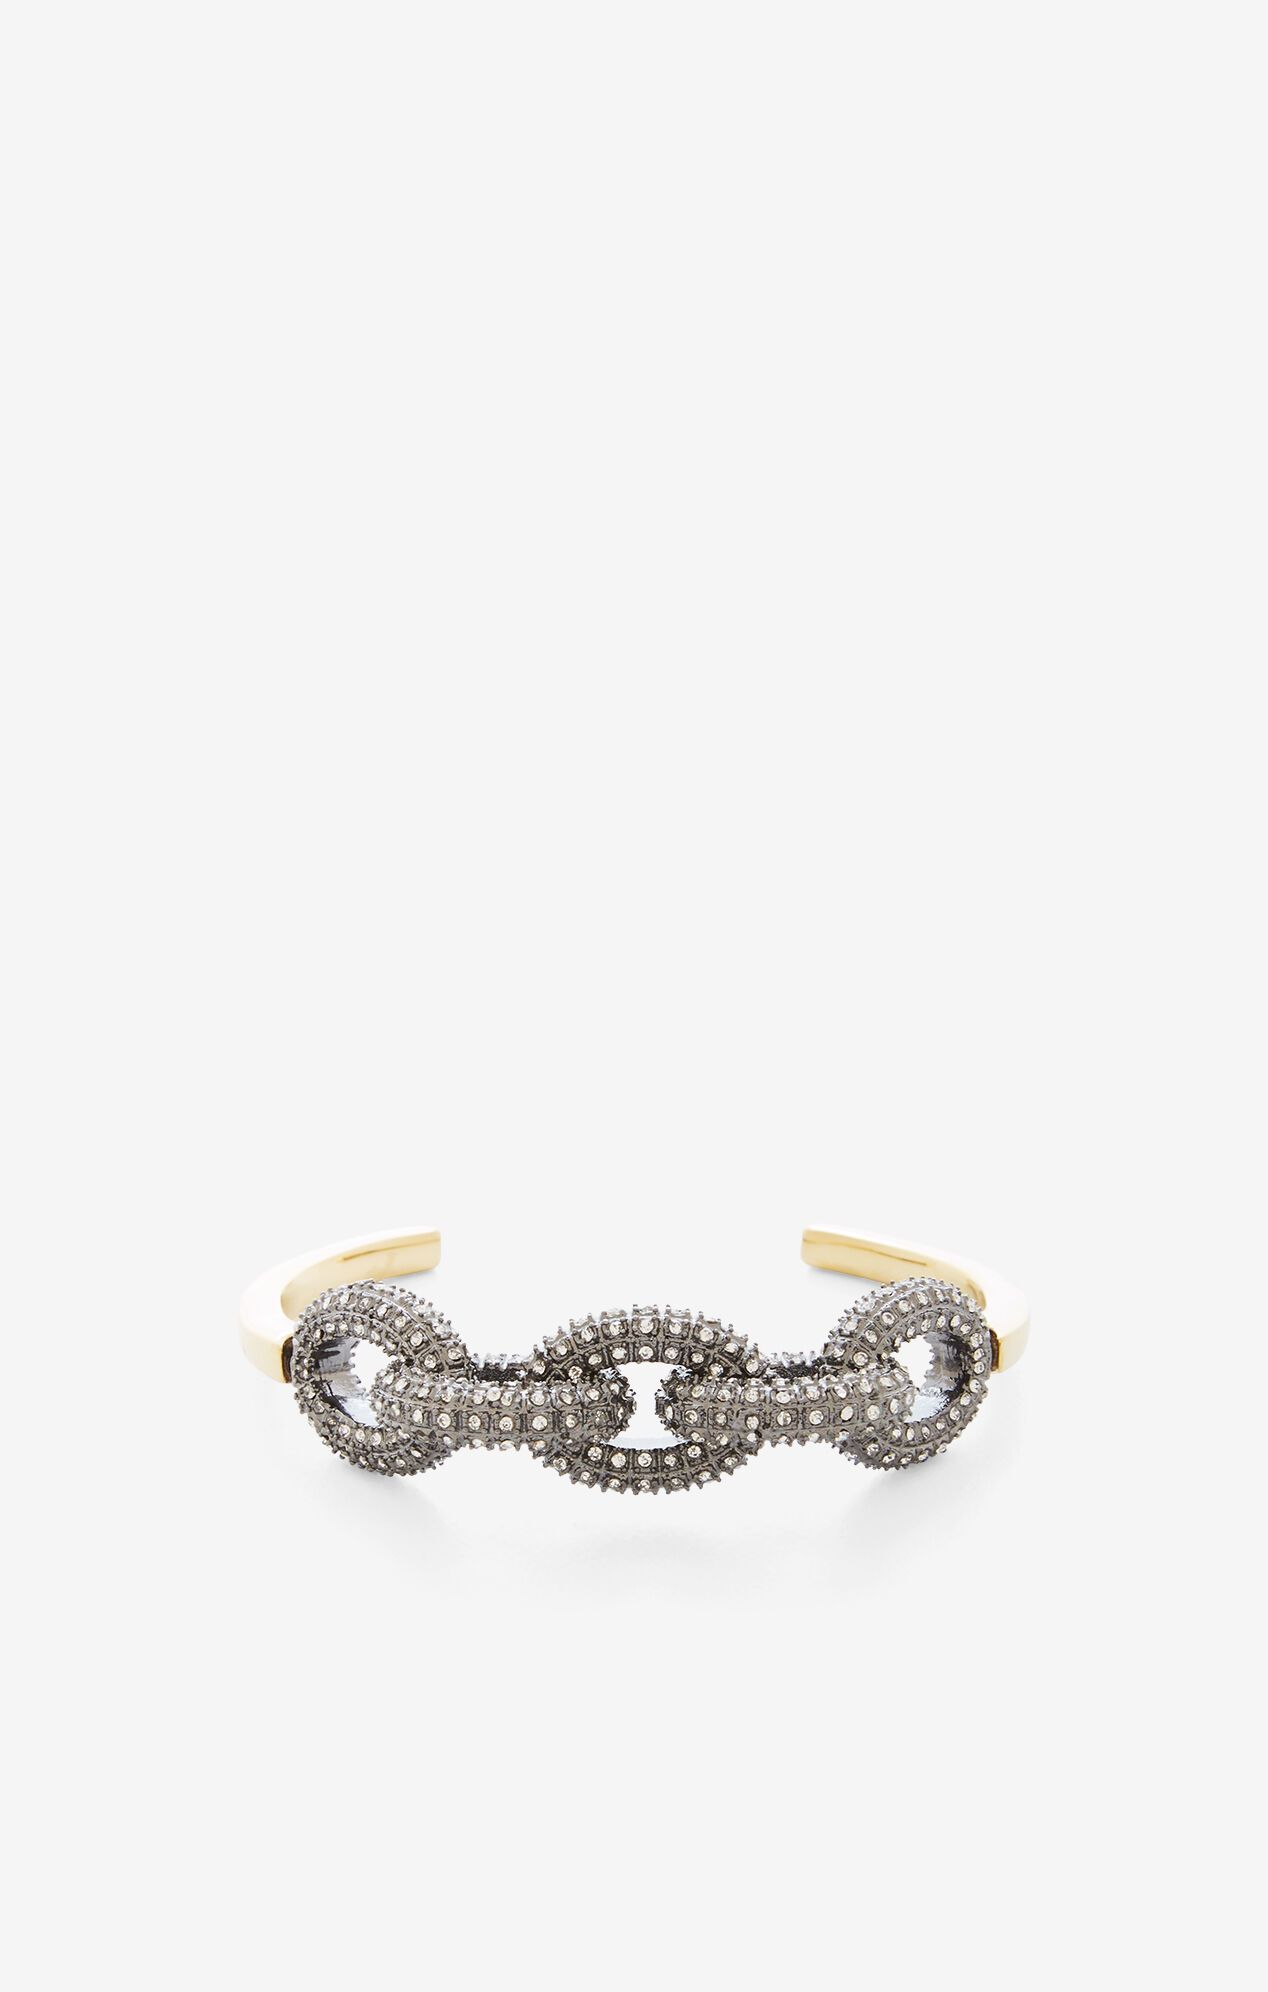 Pave Chain Link Cuff Bracelet